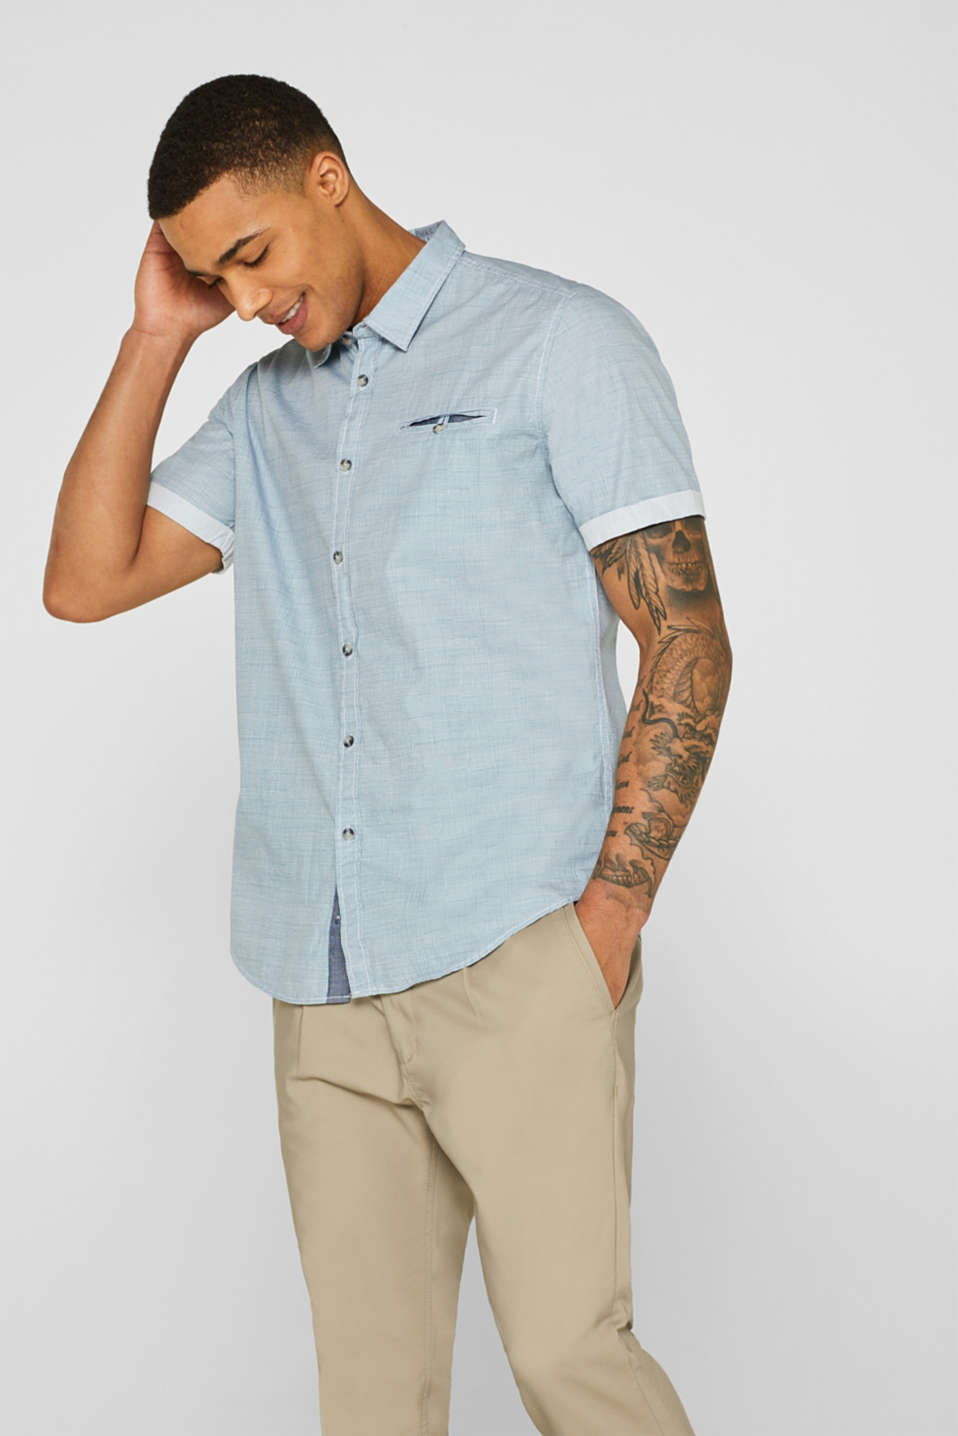 edc - Short sleeve shirt with a grid pattern, 100% cotton